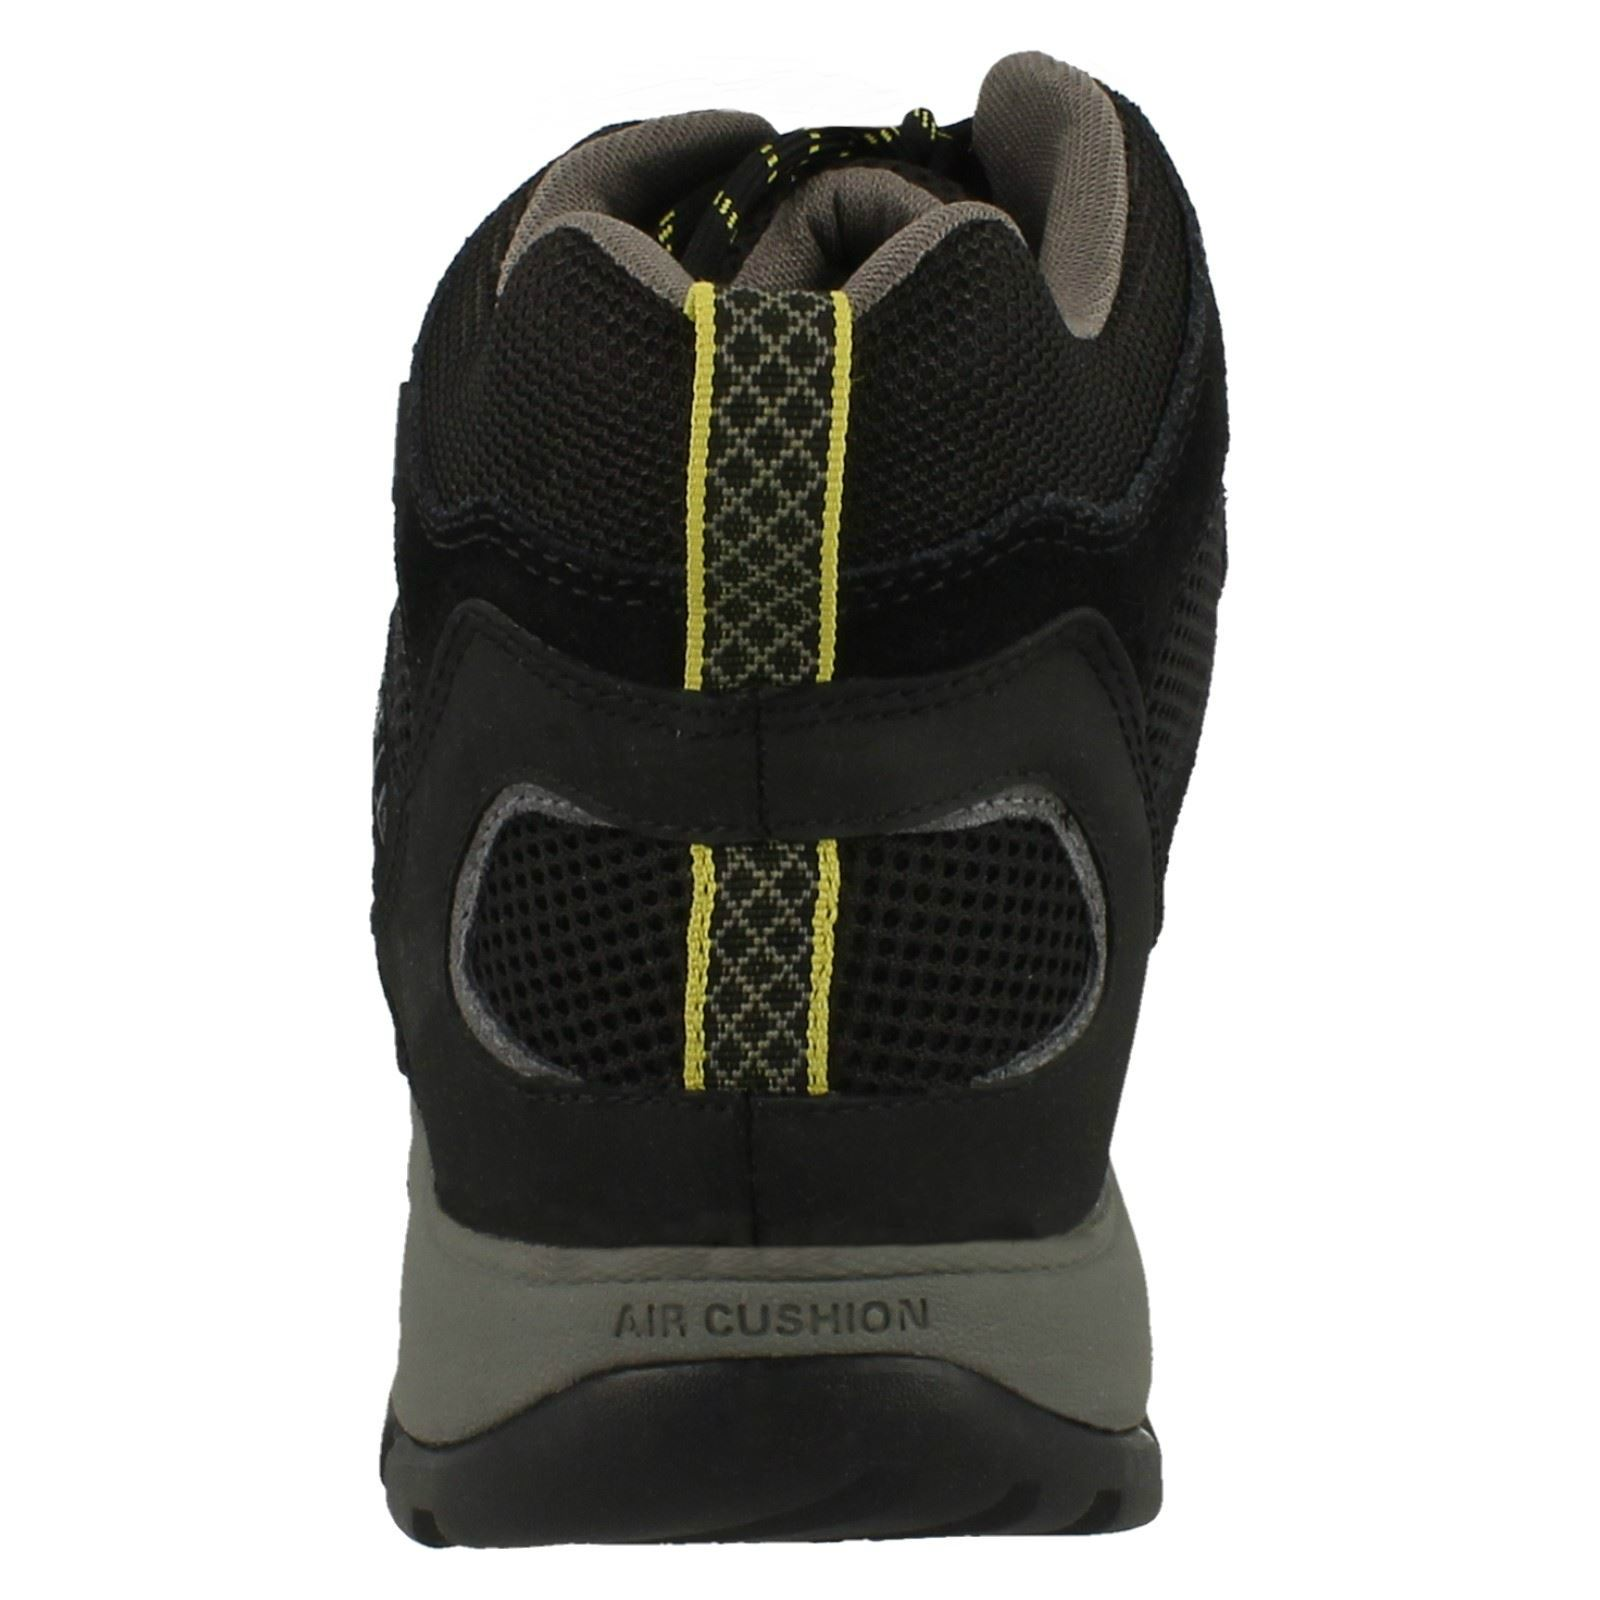 thumbnail 6 - Mens-Merrell-Waterproof-Walking-Boots-039-Phoenix-Mid-039